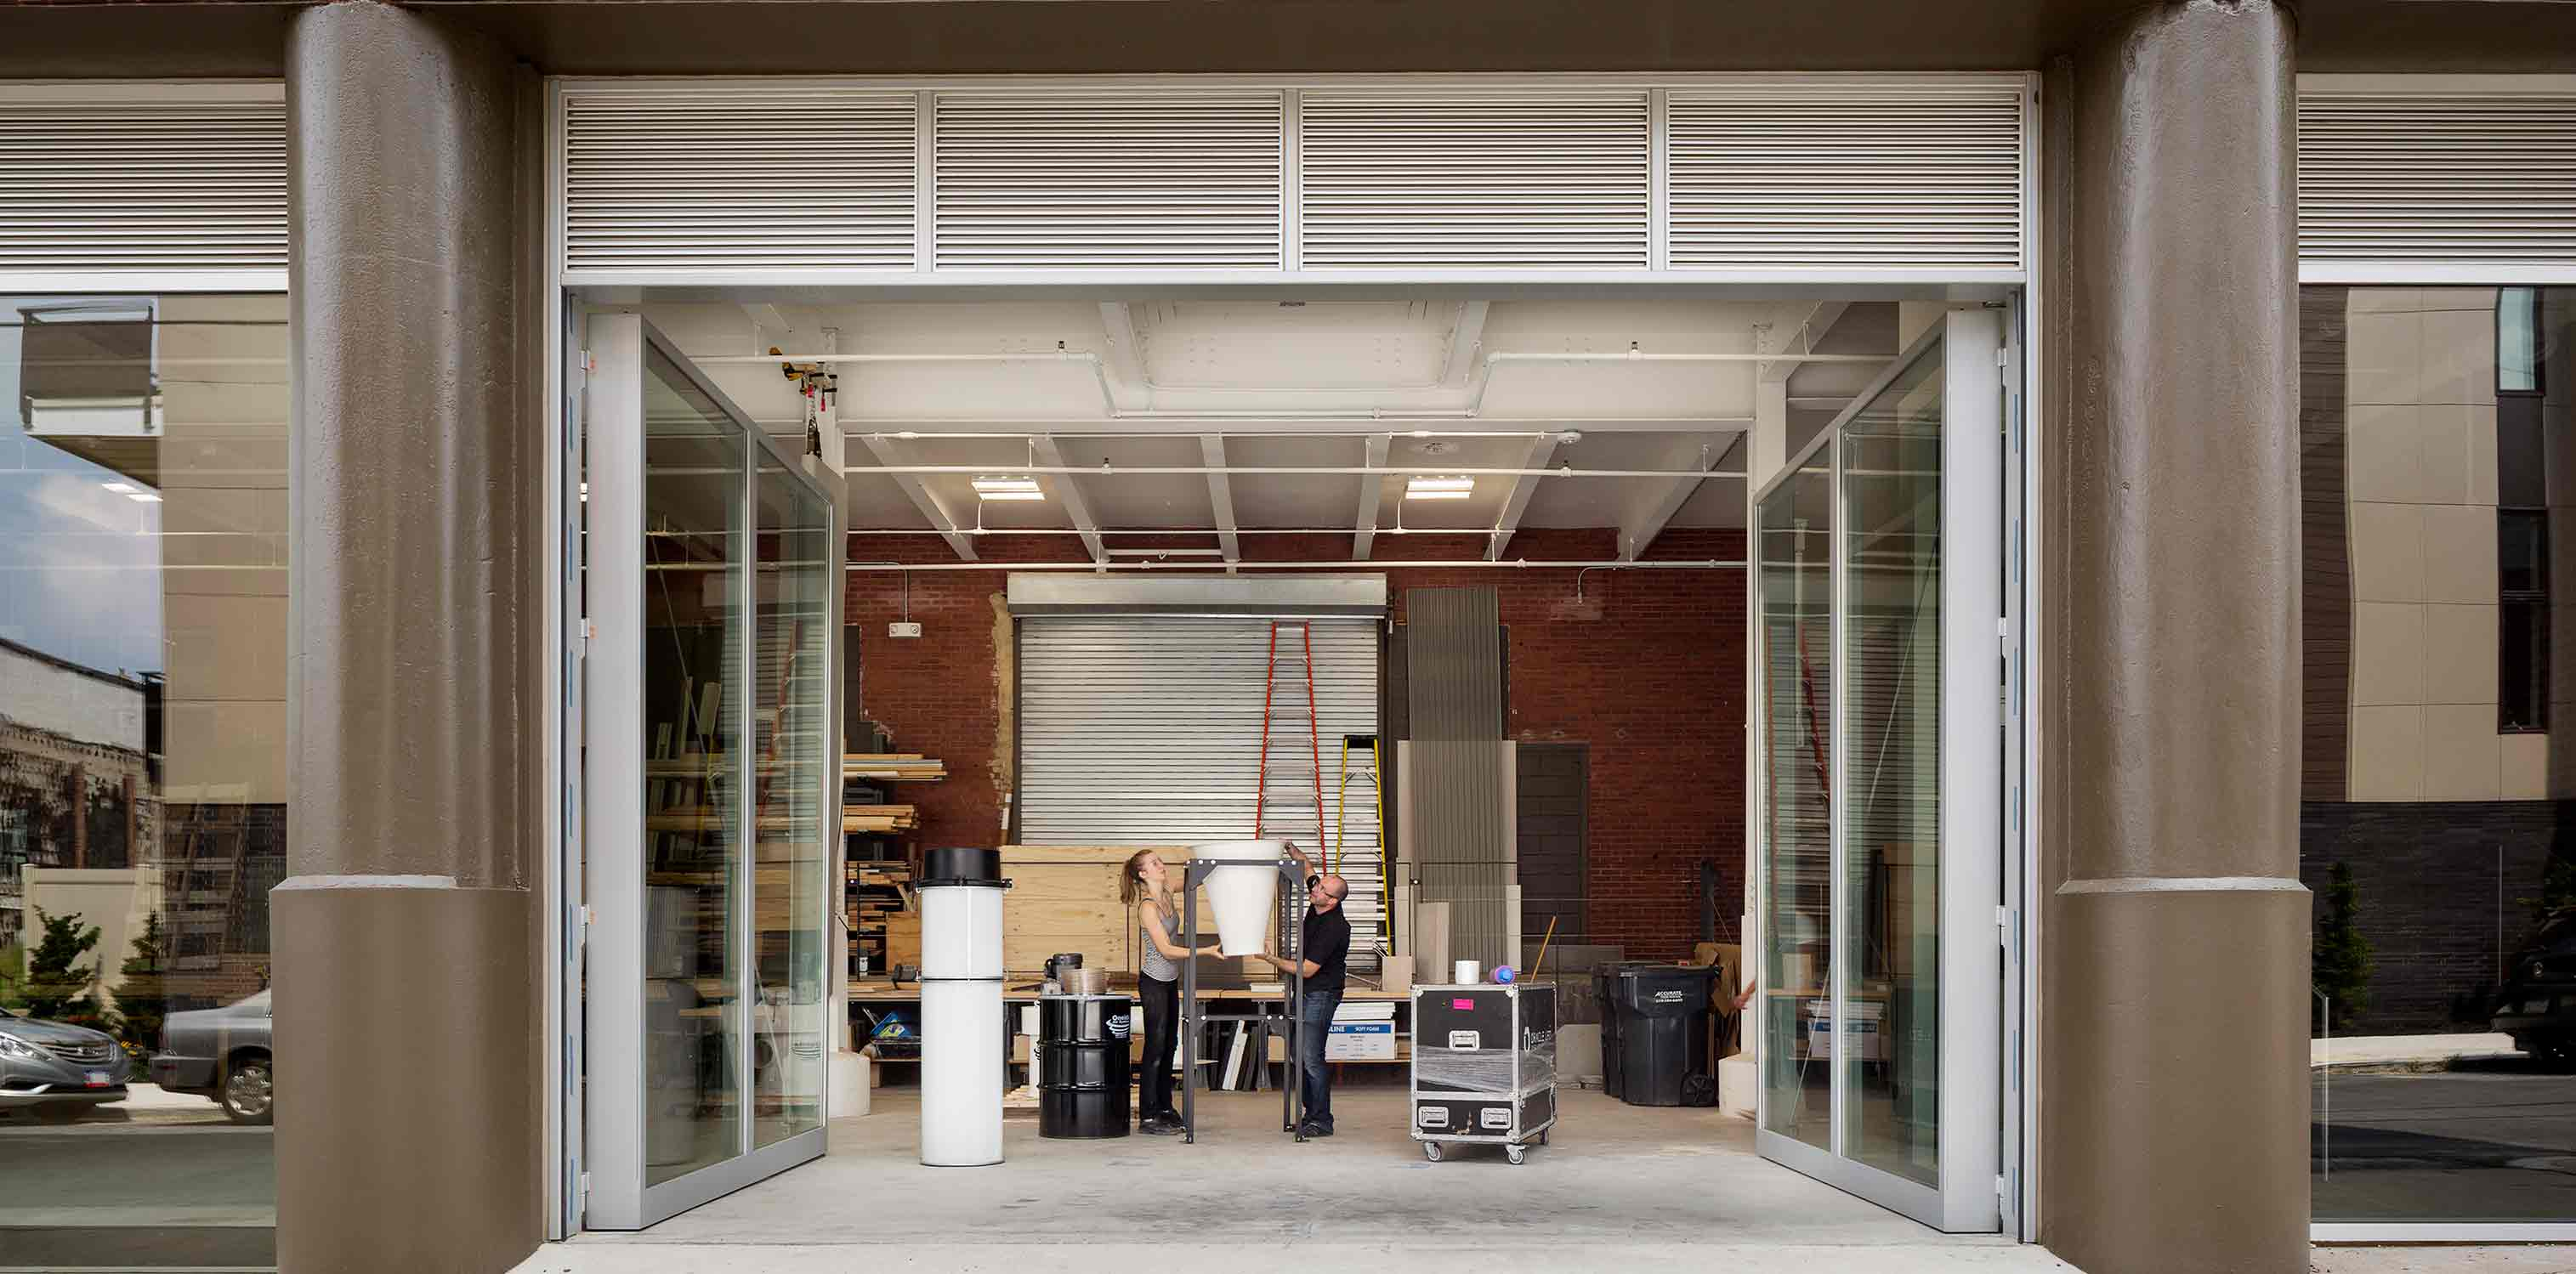 <p>The workshop's glass doors measure 13 feet high and open onto the street to provide natural ventilation and to allow for the movement of full-scale building mockups.<br> <br /><small>©Michael Moran</small></p>